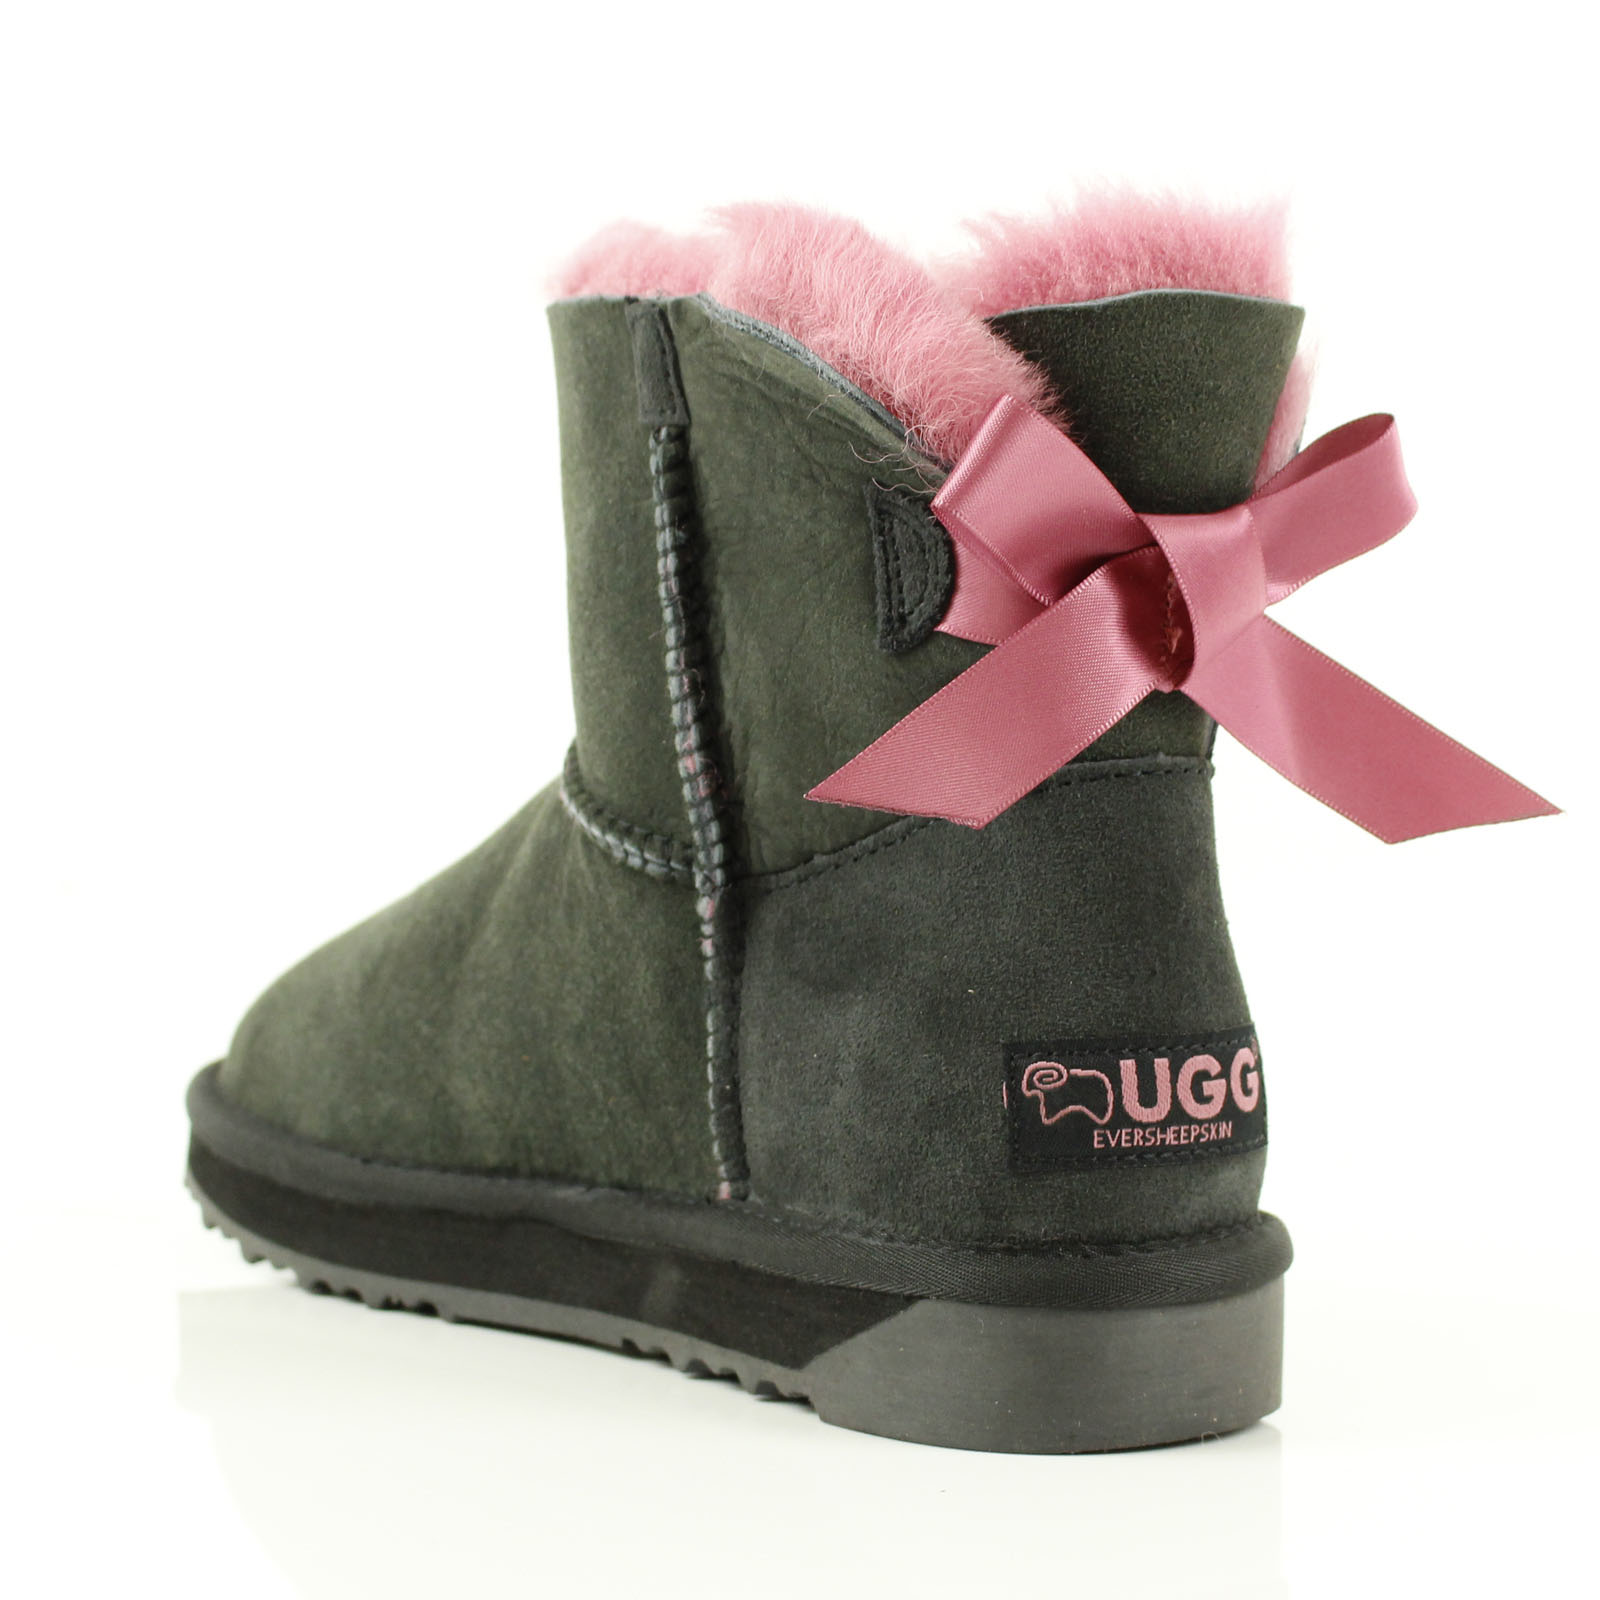 Details about UGG BOOTS NEW 100% Australian Sheepskin Women Mini Back Bow Fruit 3 colours